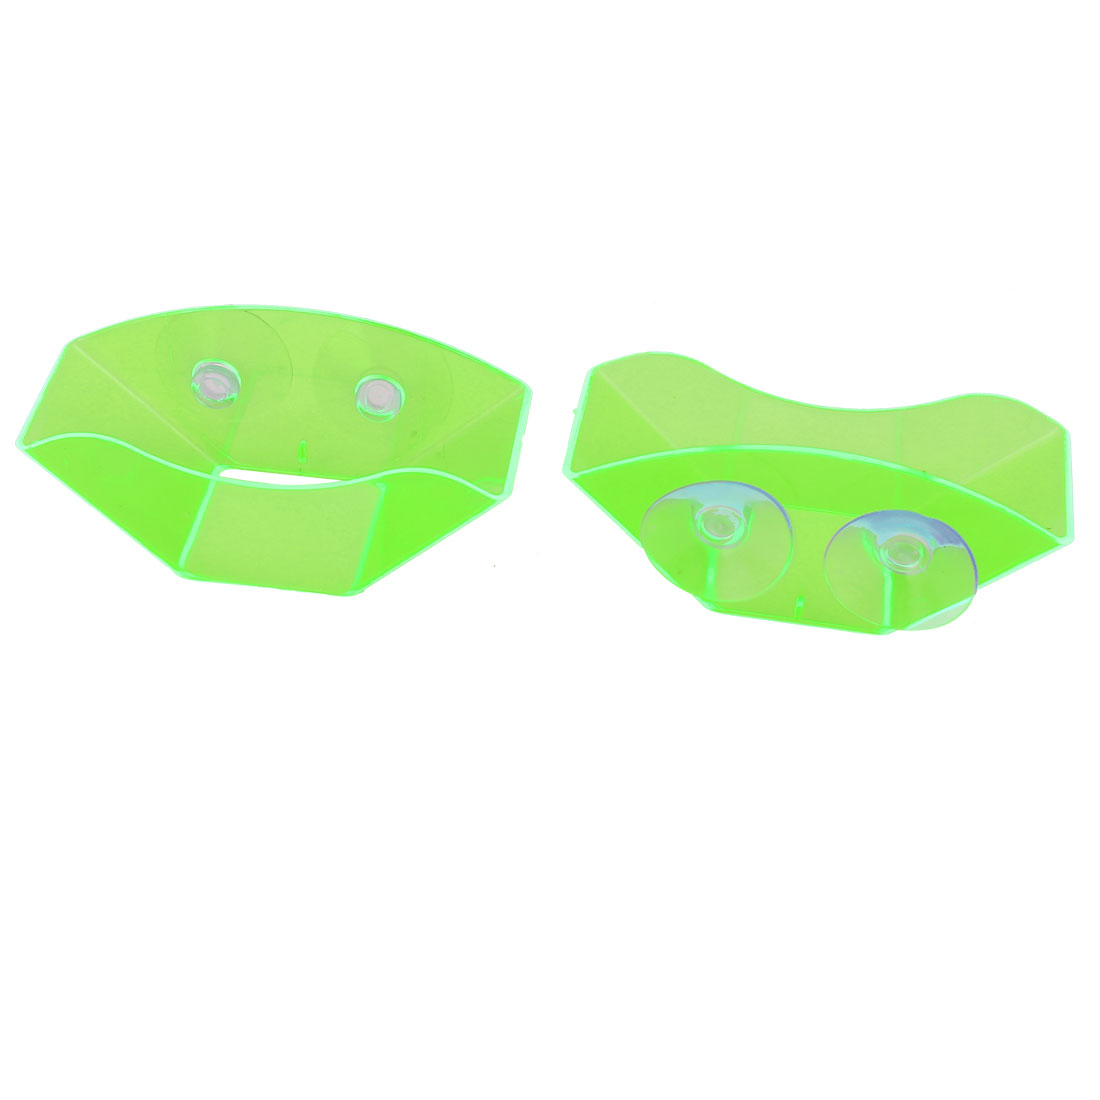 Suction Cup Multi-purpose Sink Shelf Sponge Soap Drain Rack Storage 2pcs Green